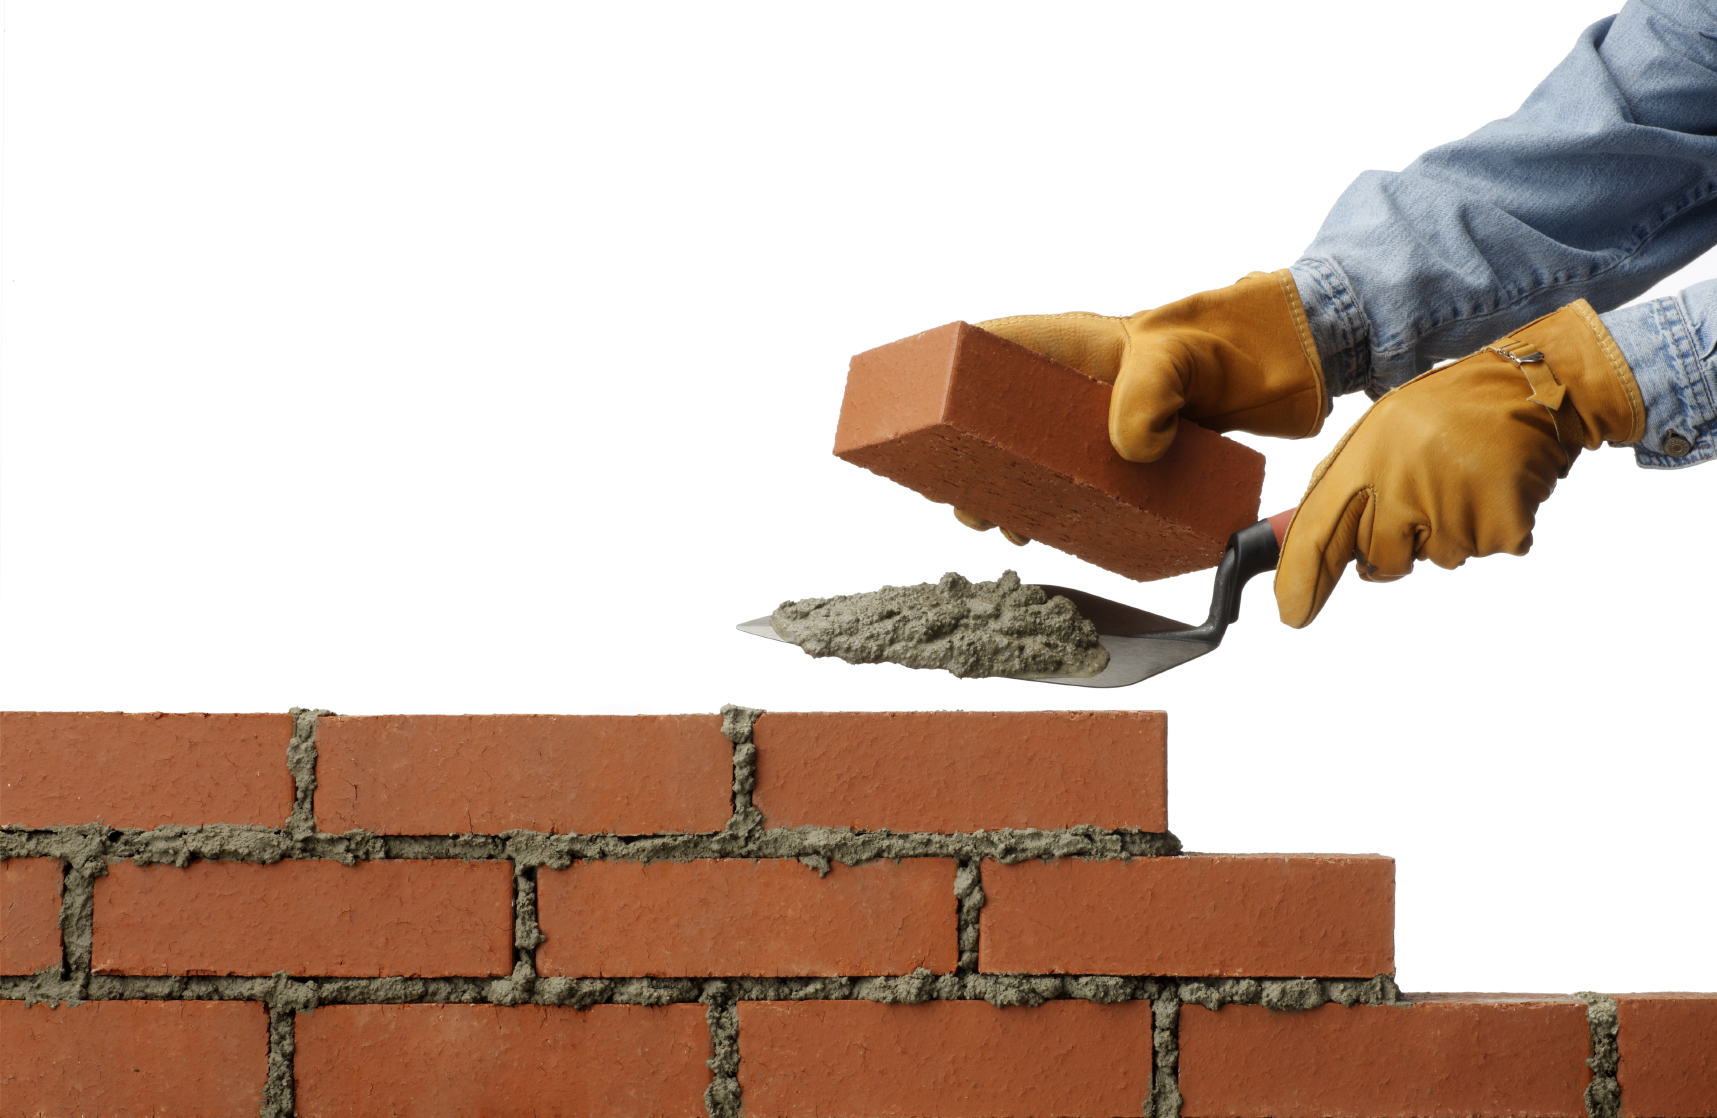 Eskom Wants Matriculants Or N3 For Bricklayer Learnerships for 2017